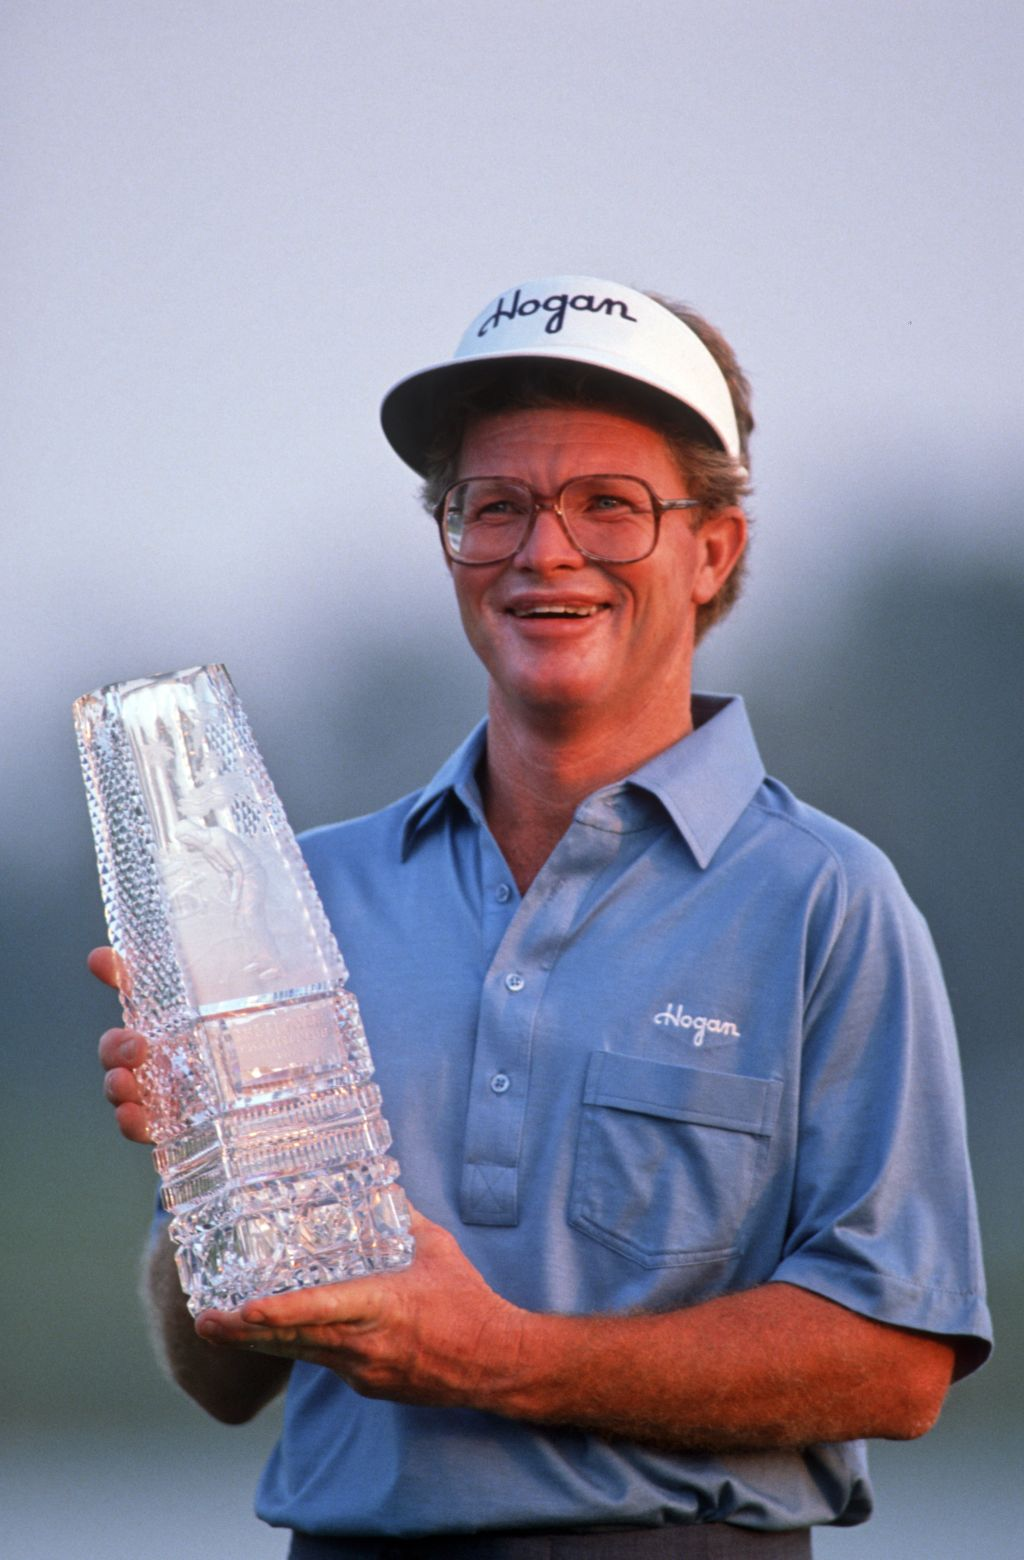 Tom Kite is all smiles as he lifts the 1989 Players Championship trophy